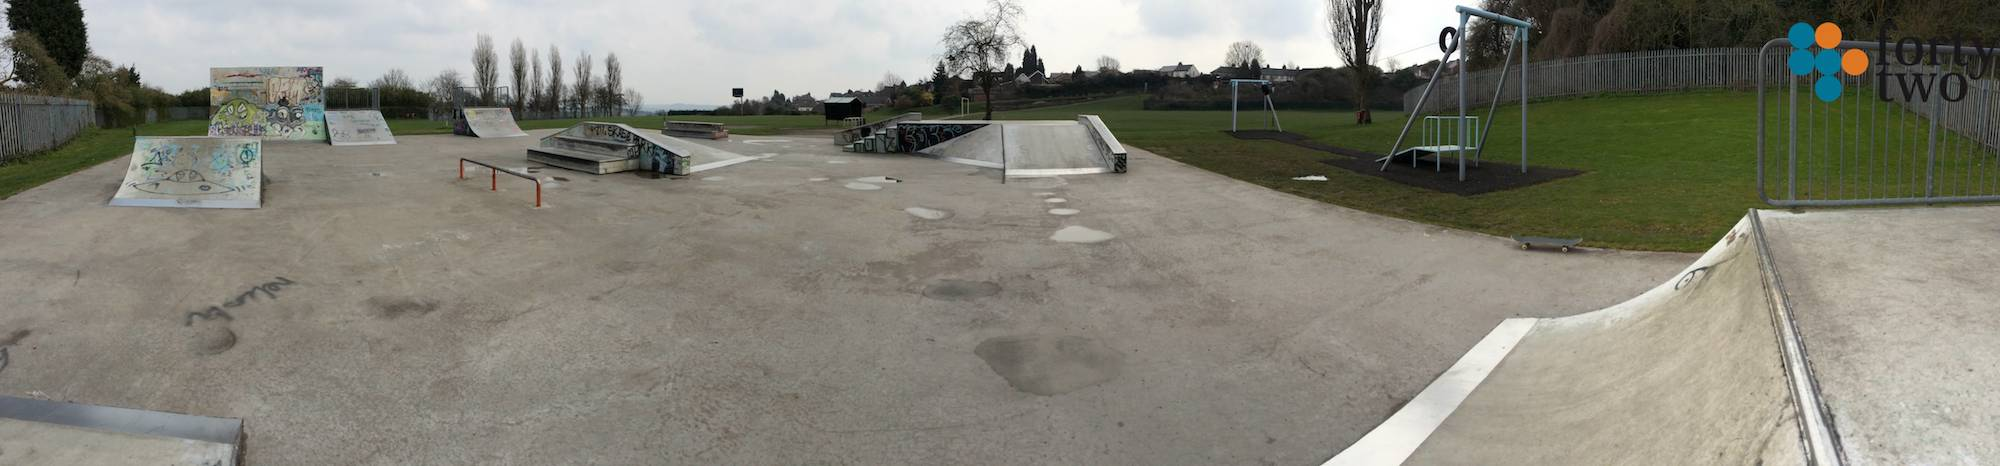 Panoramic View of Nottingham's Standhill skatepark View 1